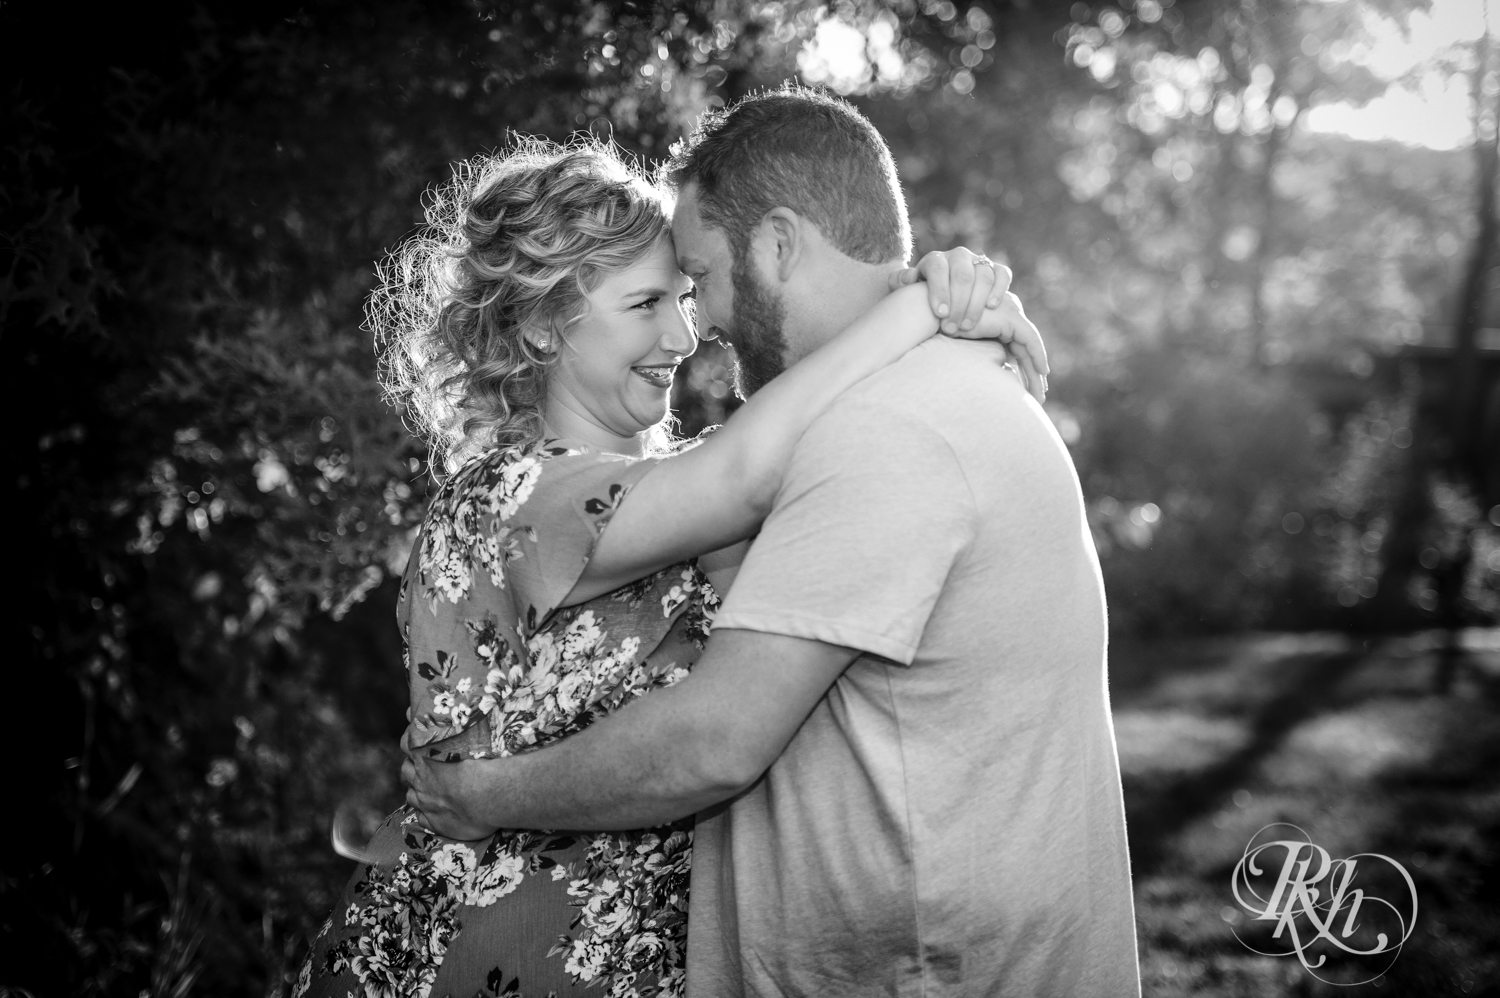 Constance & Josh - Minnesota Engagement Photography - Lebanon Hills Regional Park - RKH Images - Blog (2 of 18).jpg